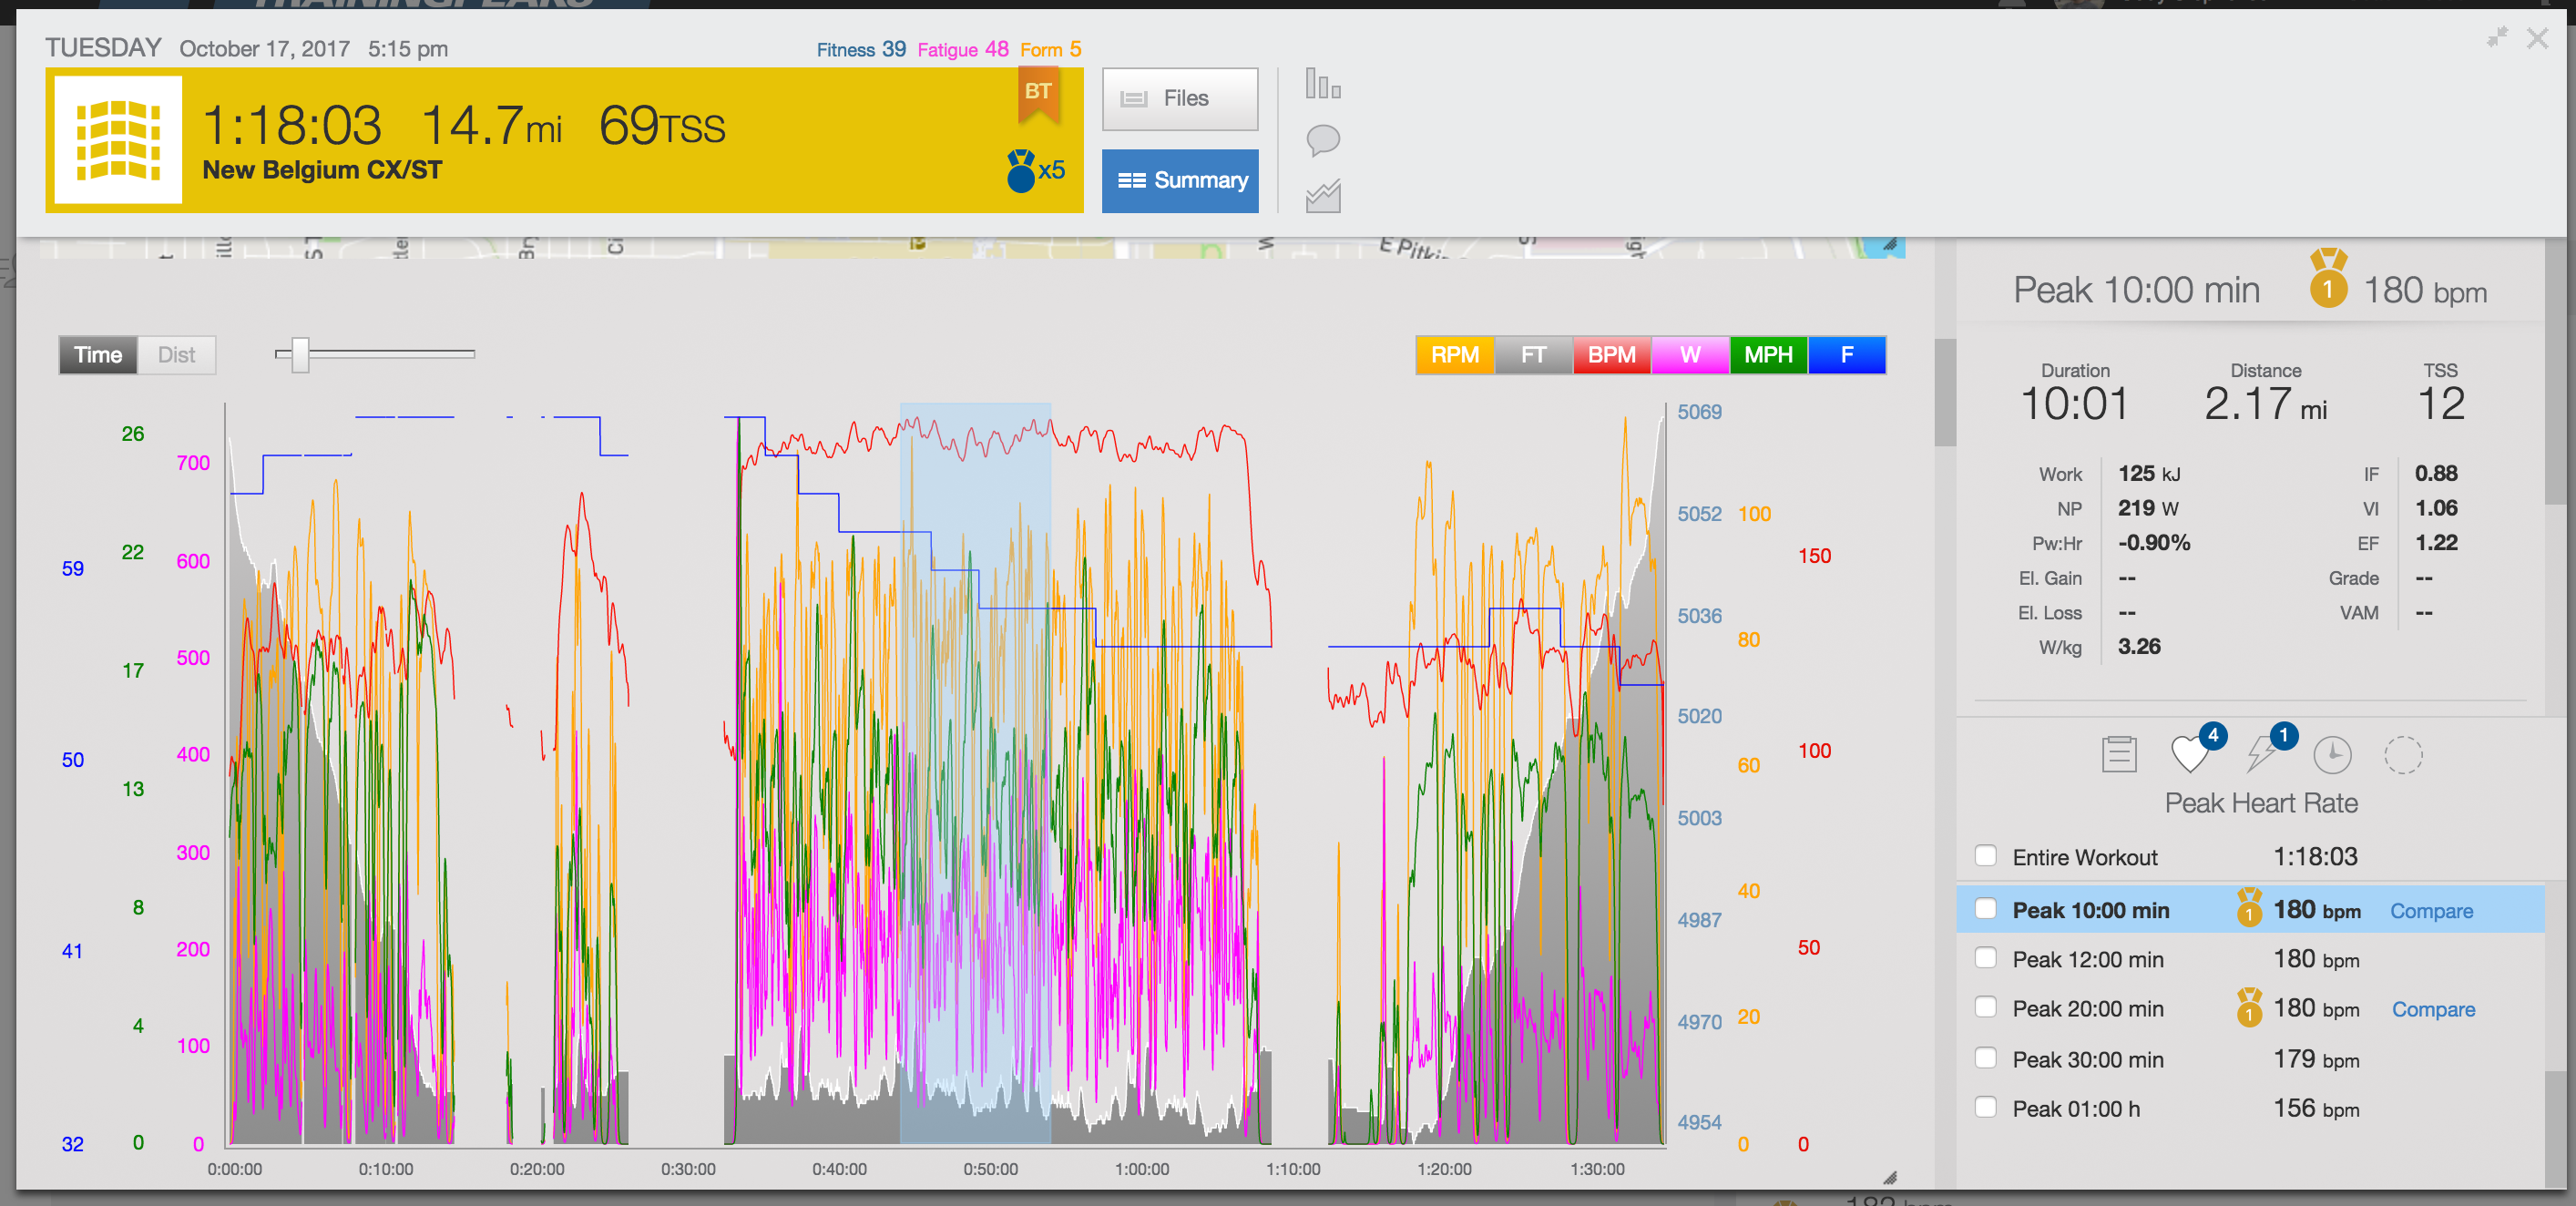 TrainingPeaks_-_Plan_your_training__track_your_workouts_and_measure_your_progress_3.png